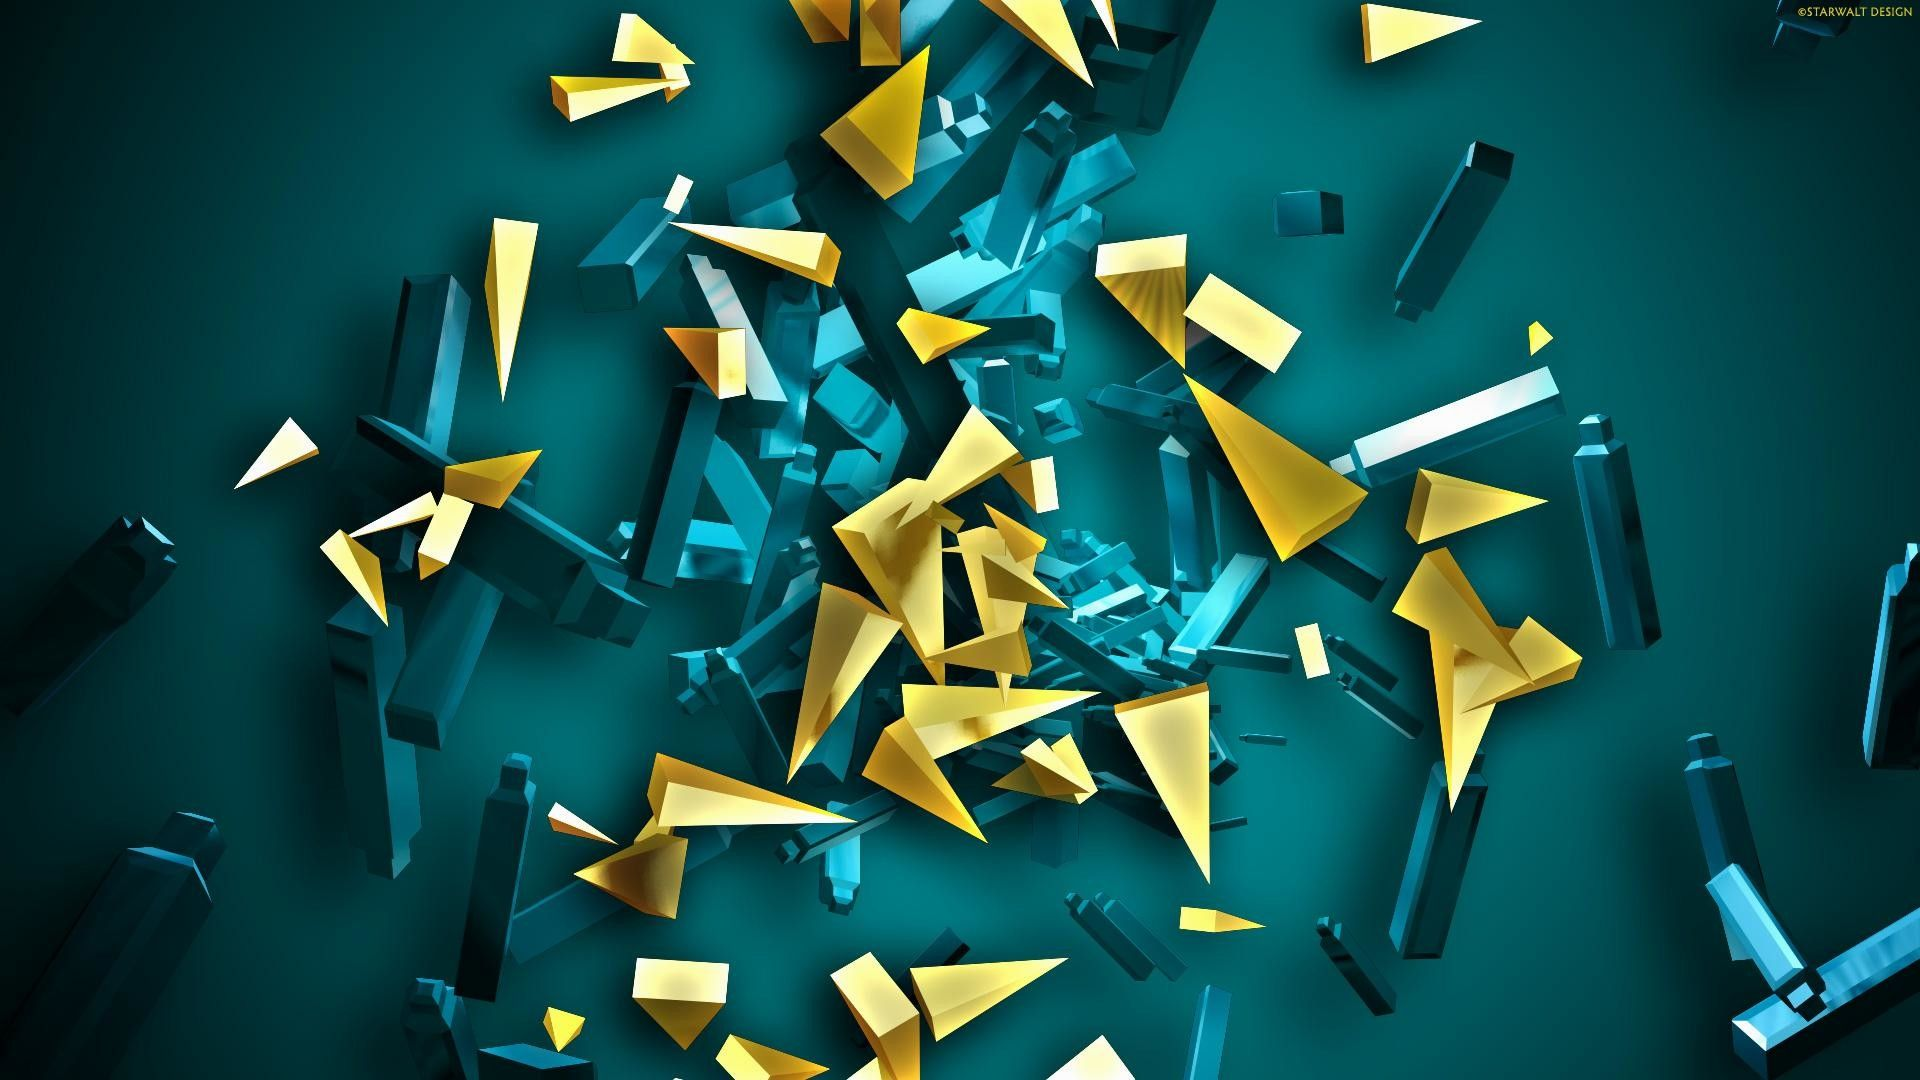 Abstract 3d Geometric Shapes Background Wallpaper Abstract Wallpaper 3d Wallpaper Abstract Abstract